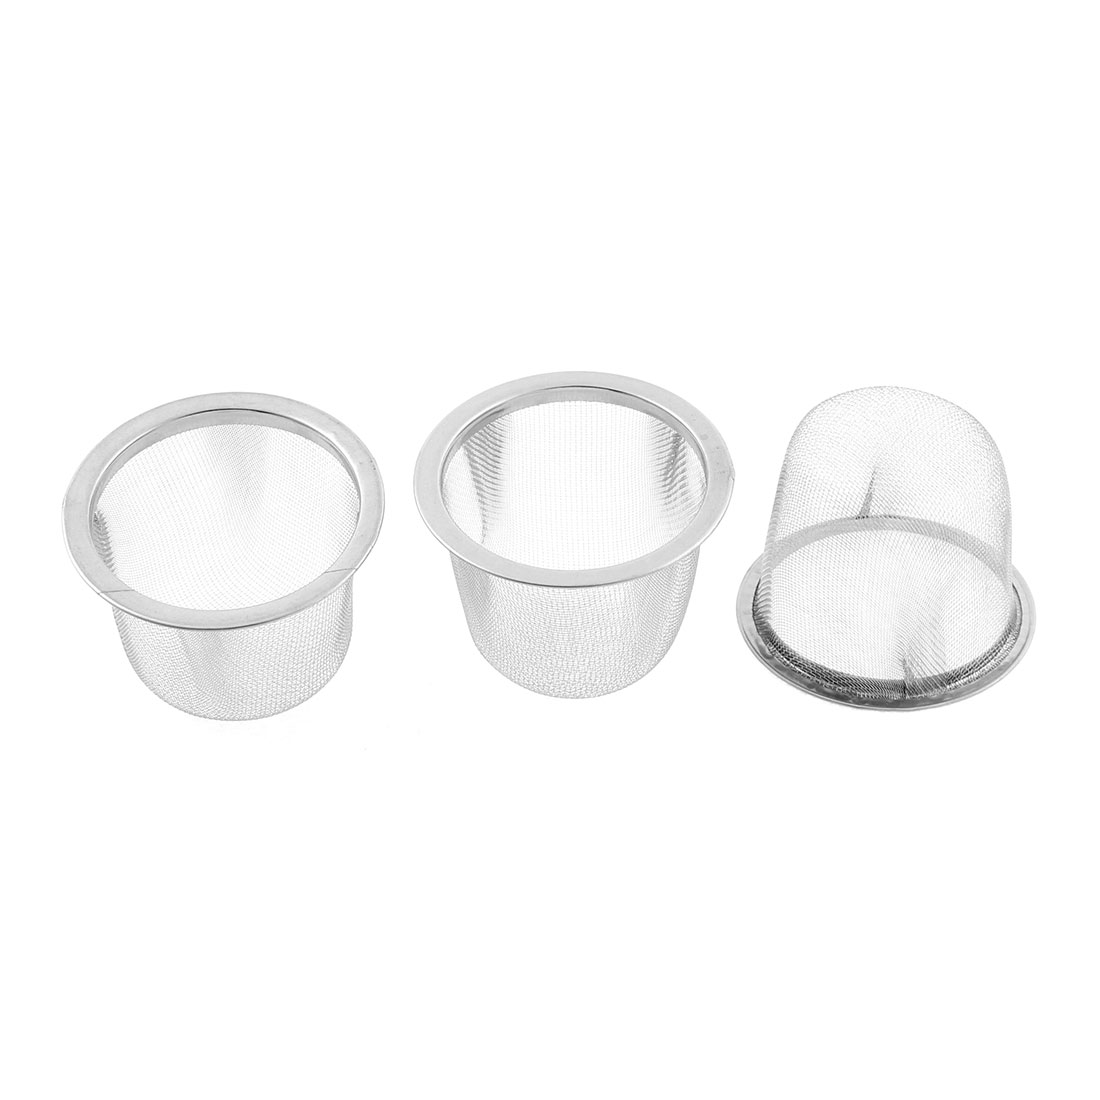 Stainless Steel Round Mesh Tea Infuser Strainer Basket 60mm Dia 3 Pcs